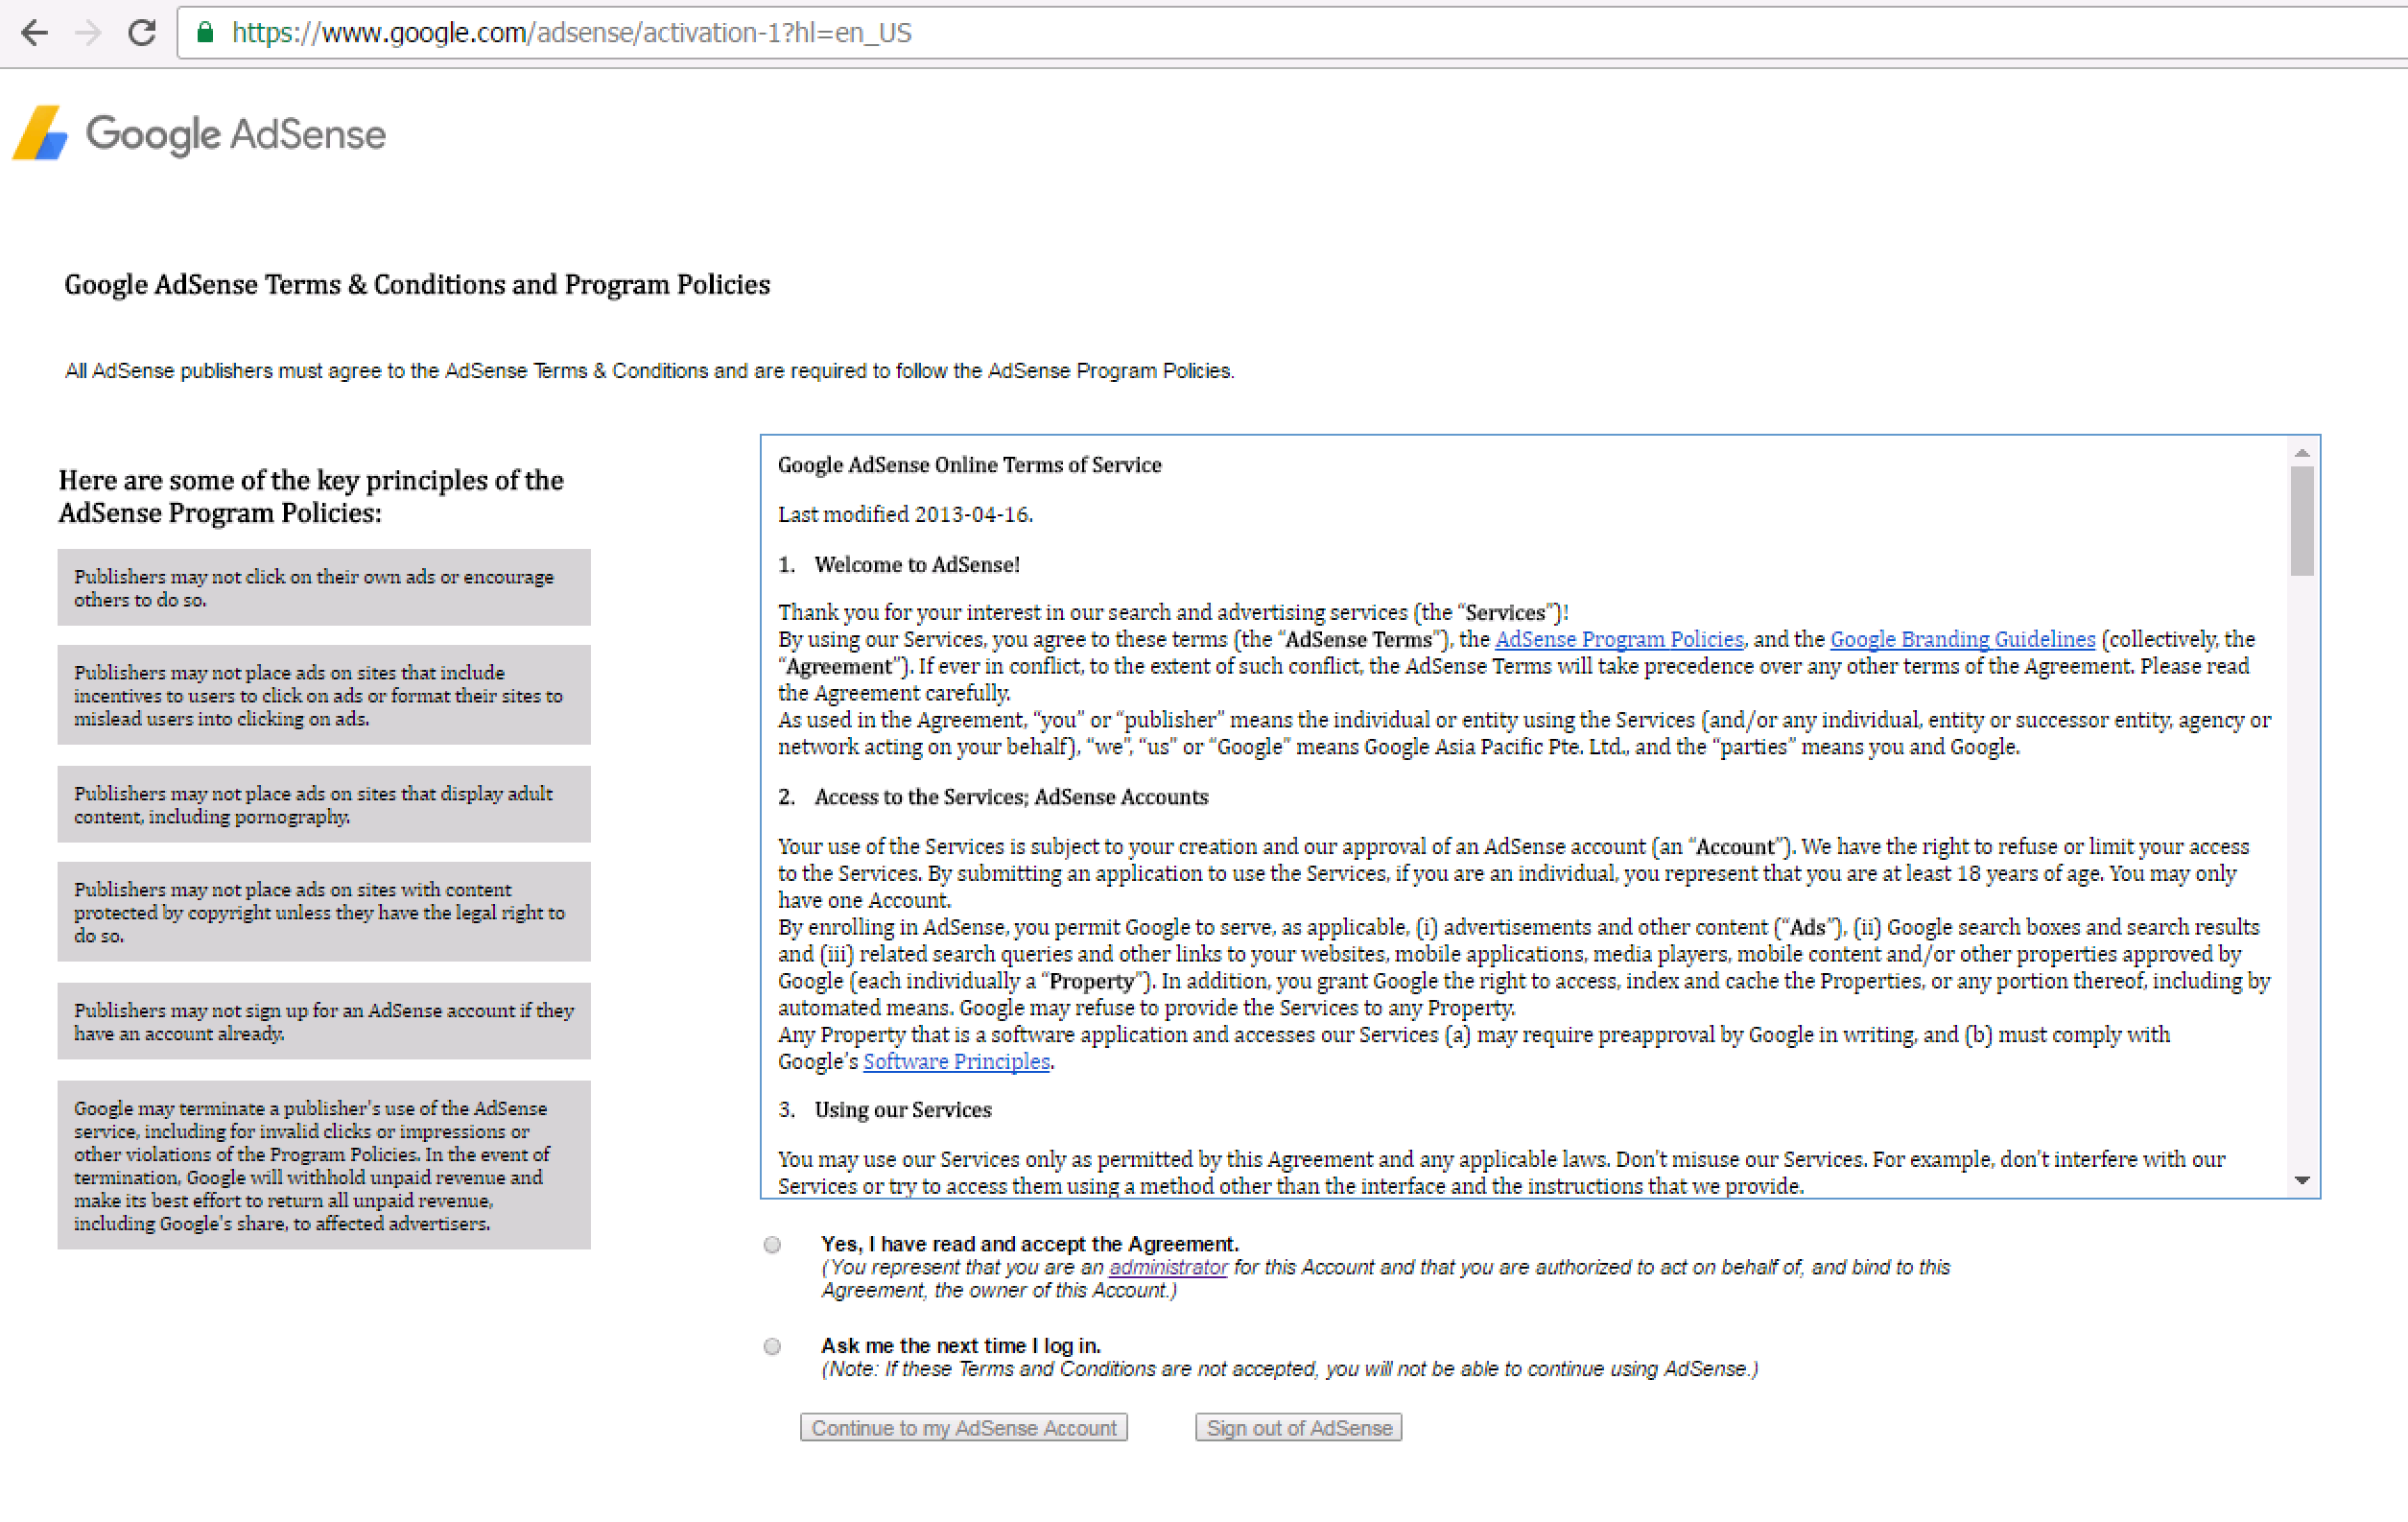 Google Adsense redirects Australian's to its Terms & Policies page